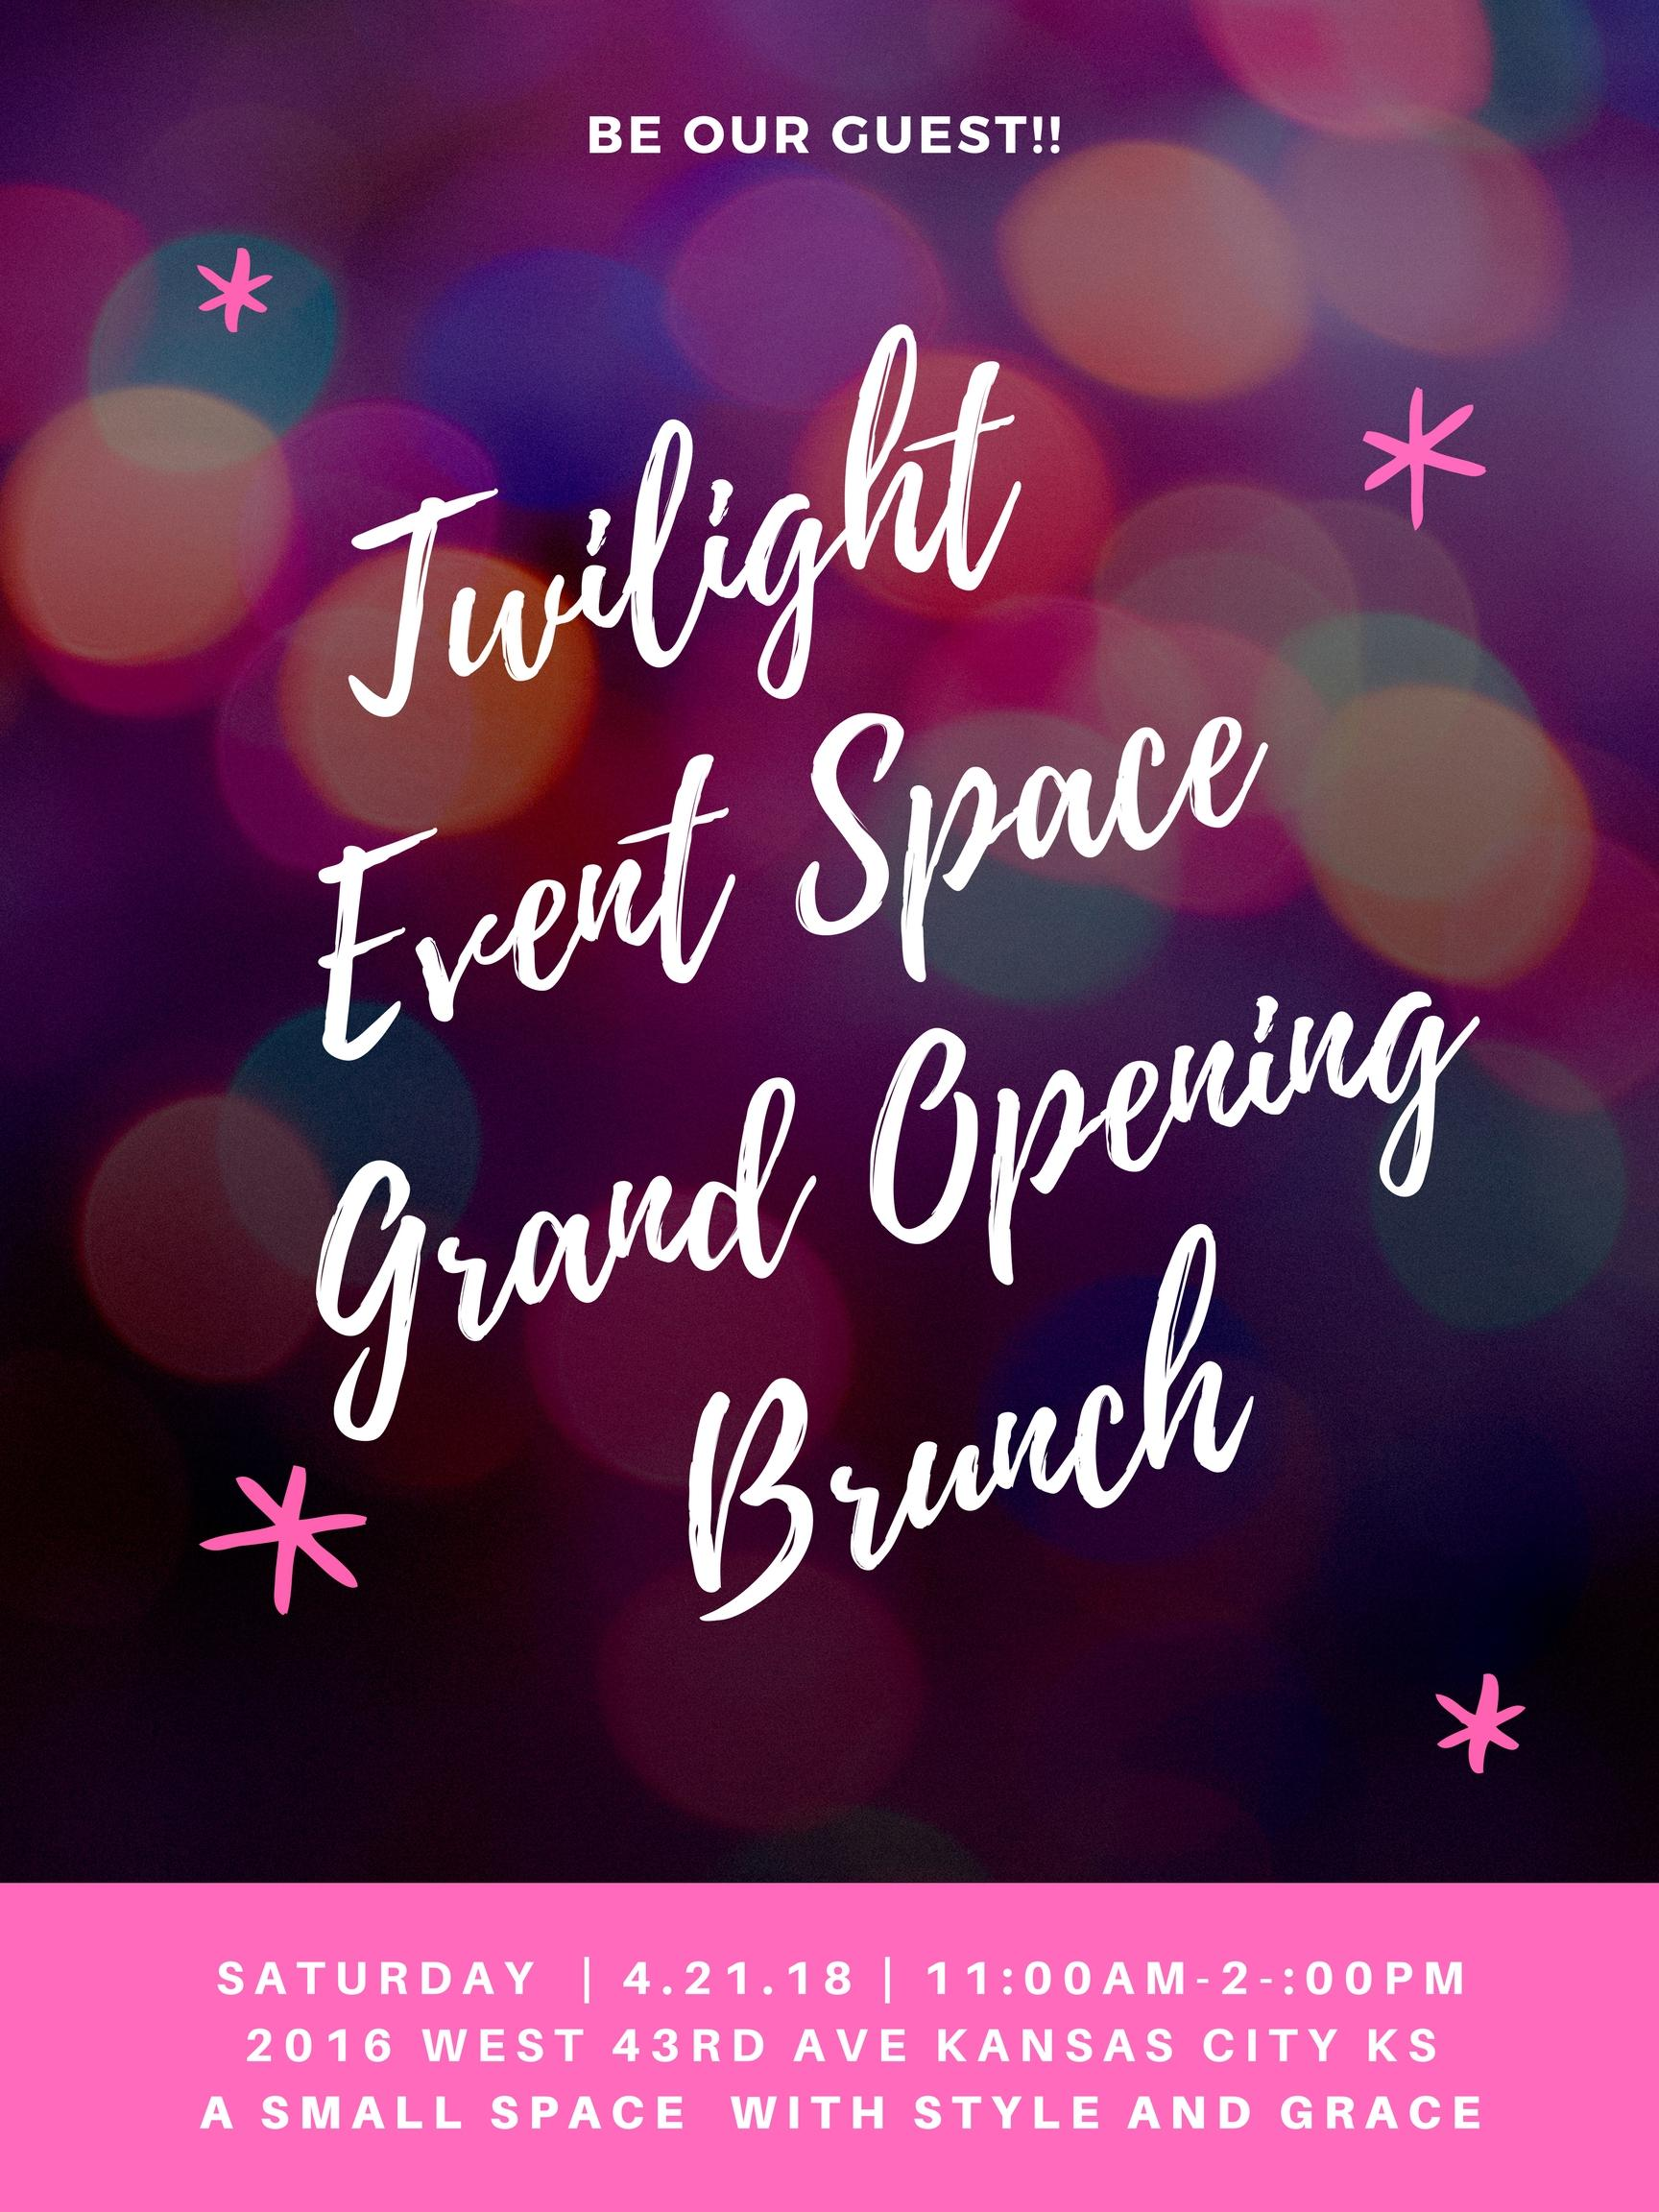 Twilight Event Space - Grand Opening Brunch